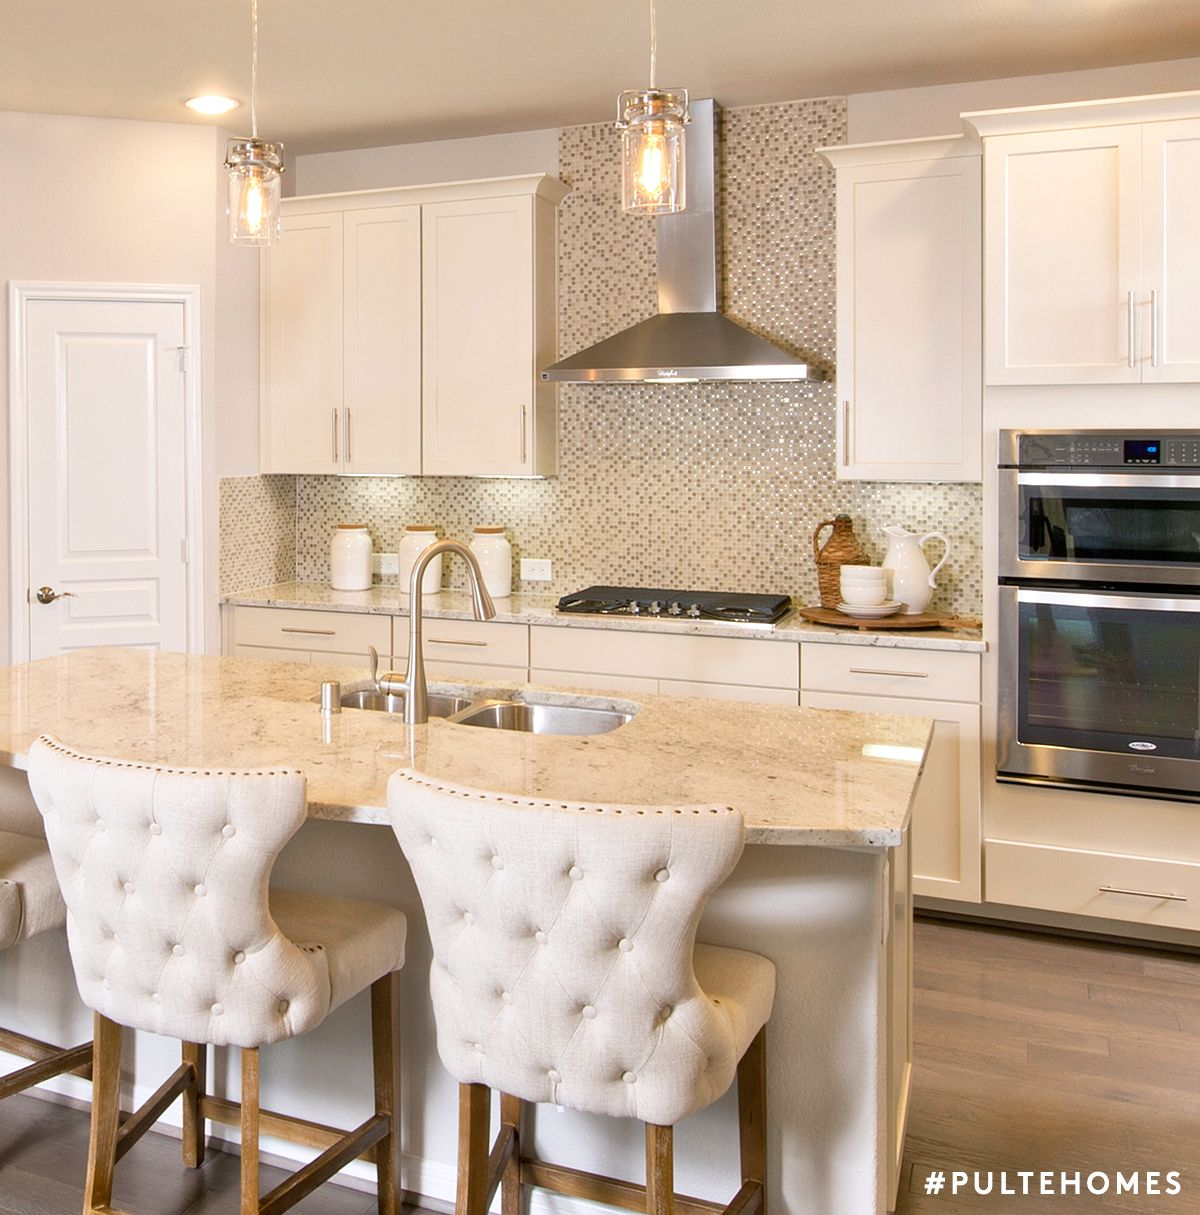 Natural Wood Accents Paired With Full Wall Backsplash